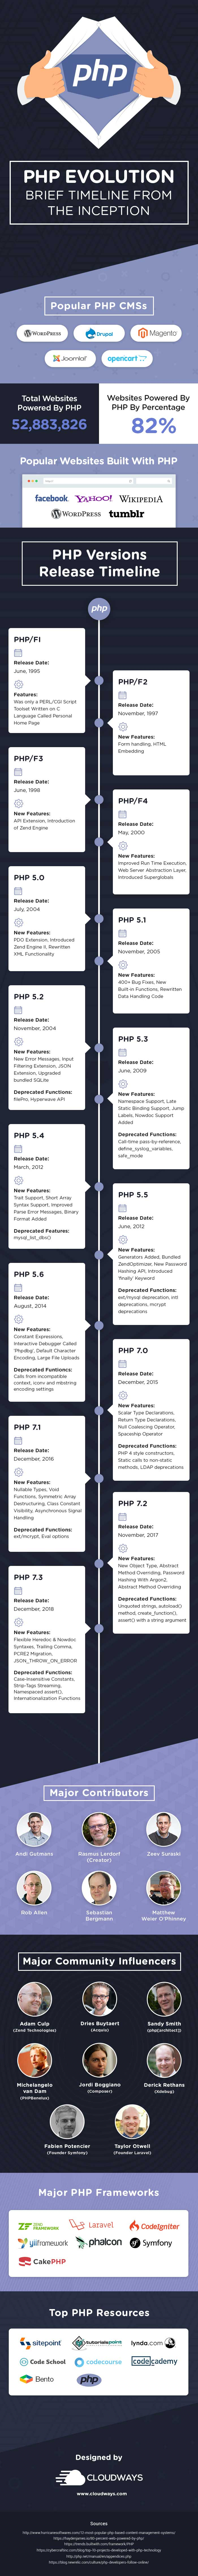 php version history infographic